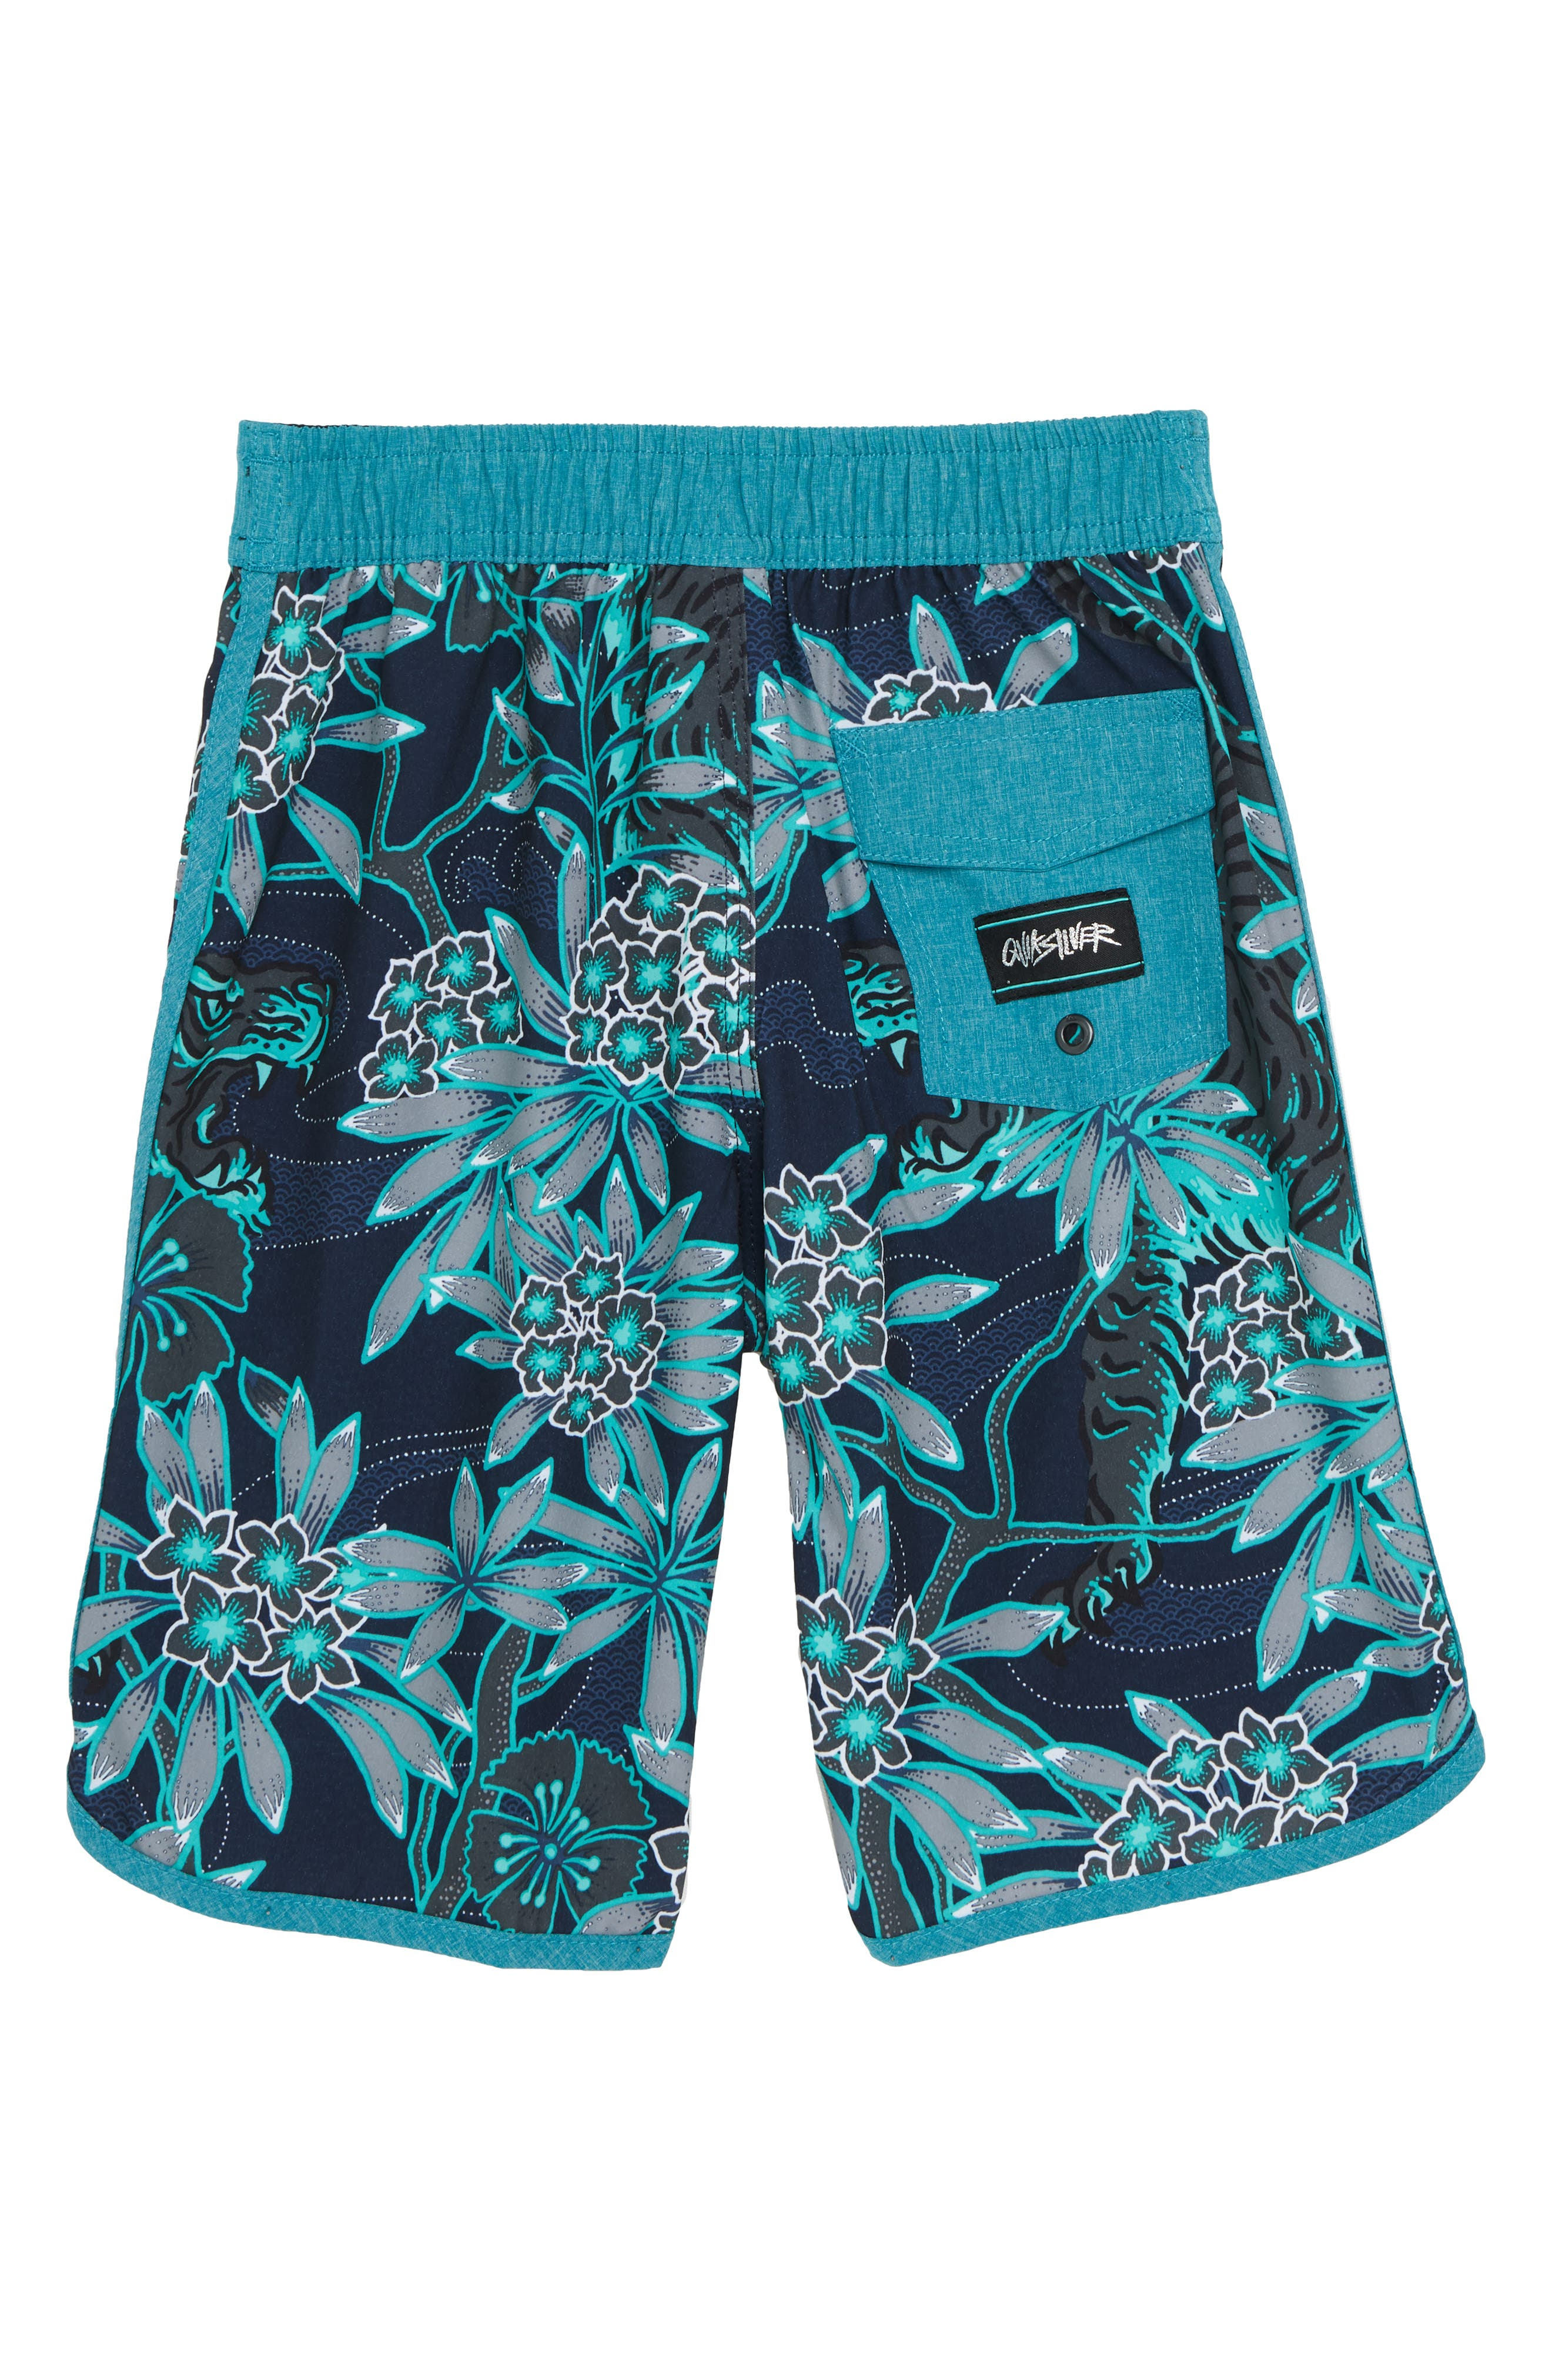 Highline Silent Fury Board Shorts,                             Alternate thumbnail 2, color,                             TYPHOON